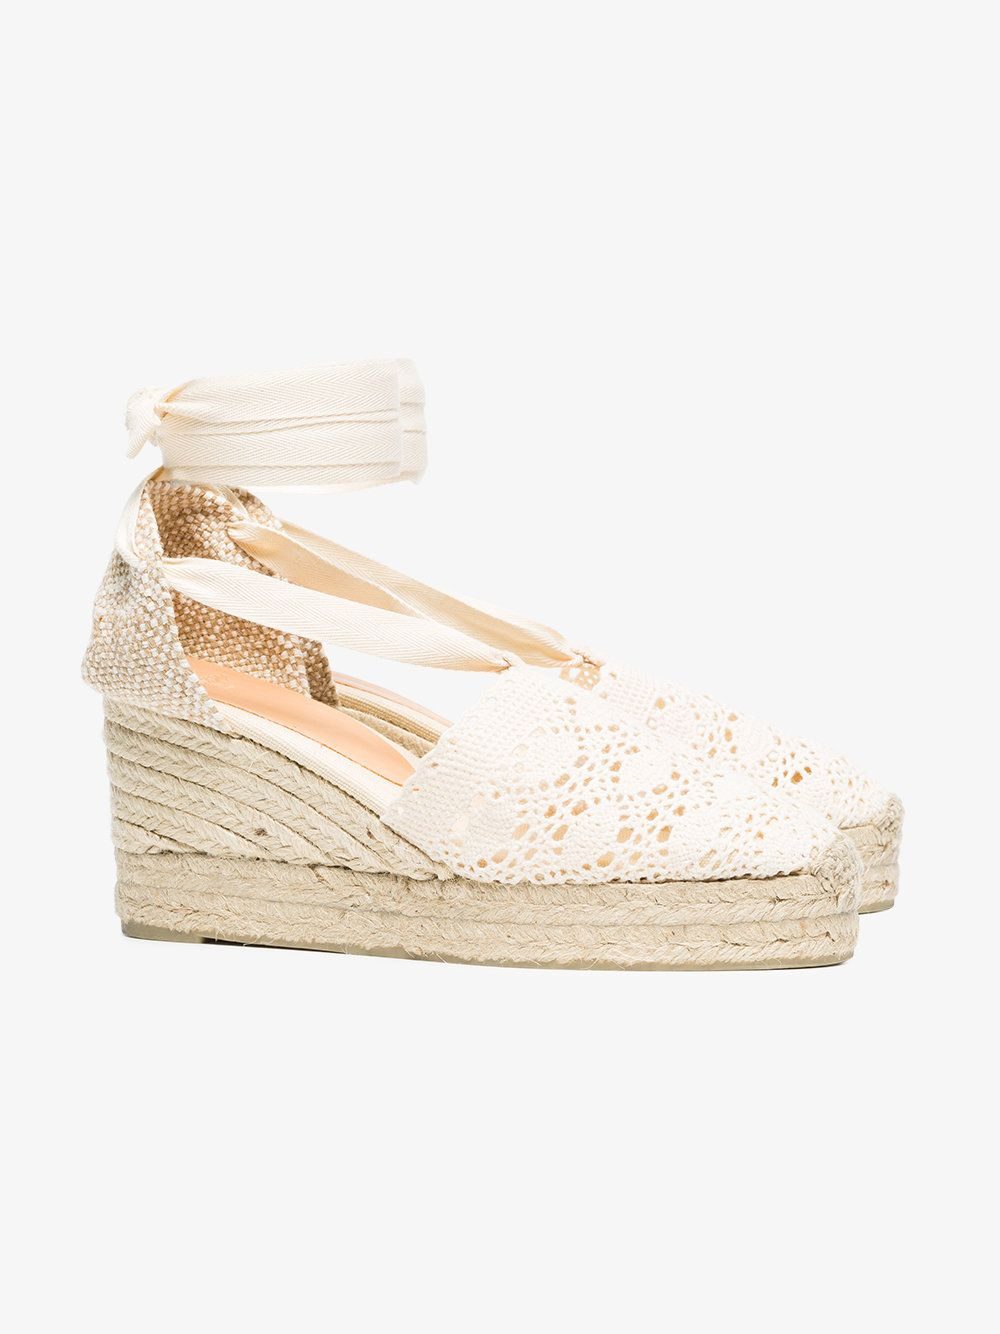 Castañer White Campesina 60 Crochet Wedge espadrilles buy cheap largest supplier cheap sale with credit card fake online buy cheap footlocker pictures collections online QqPp7l